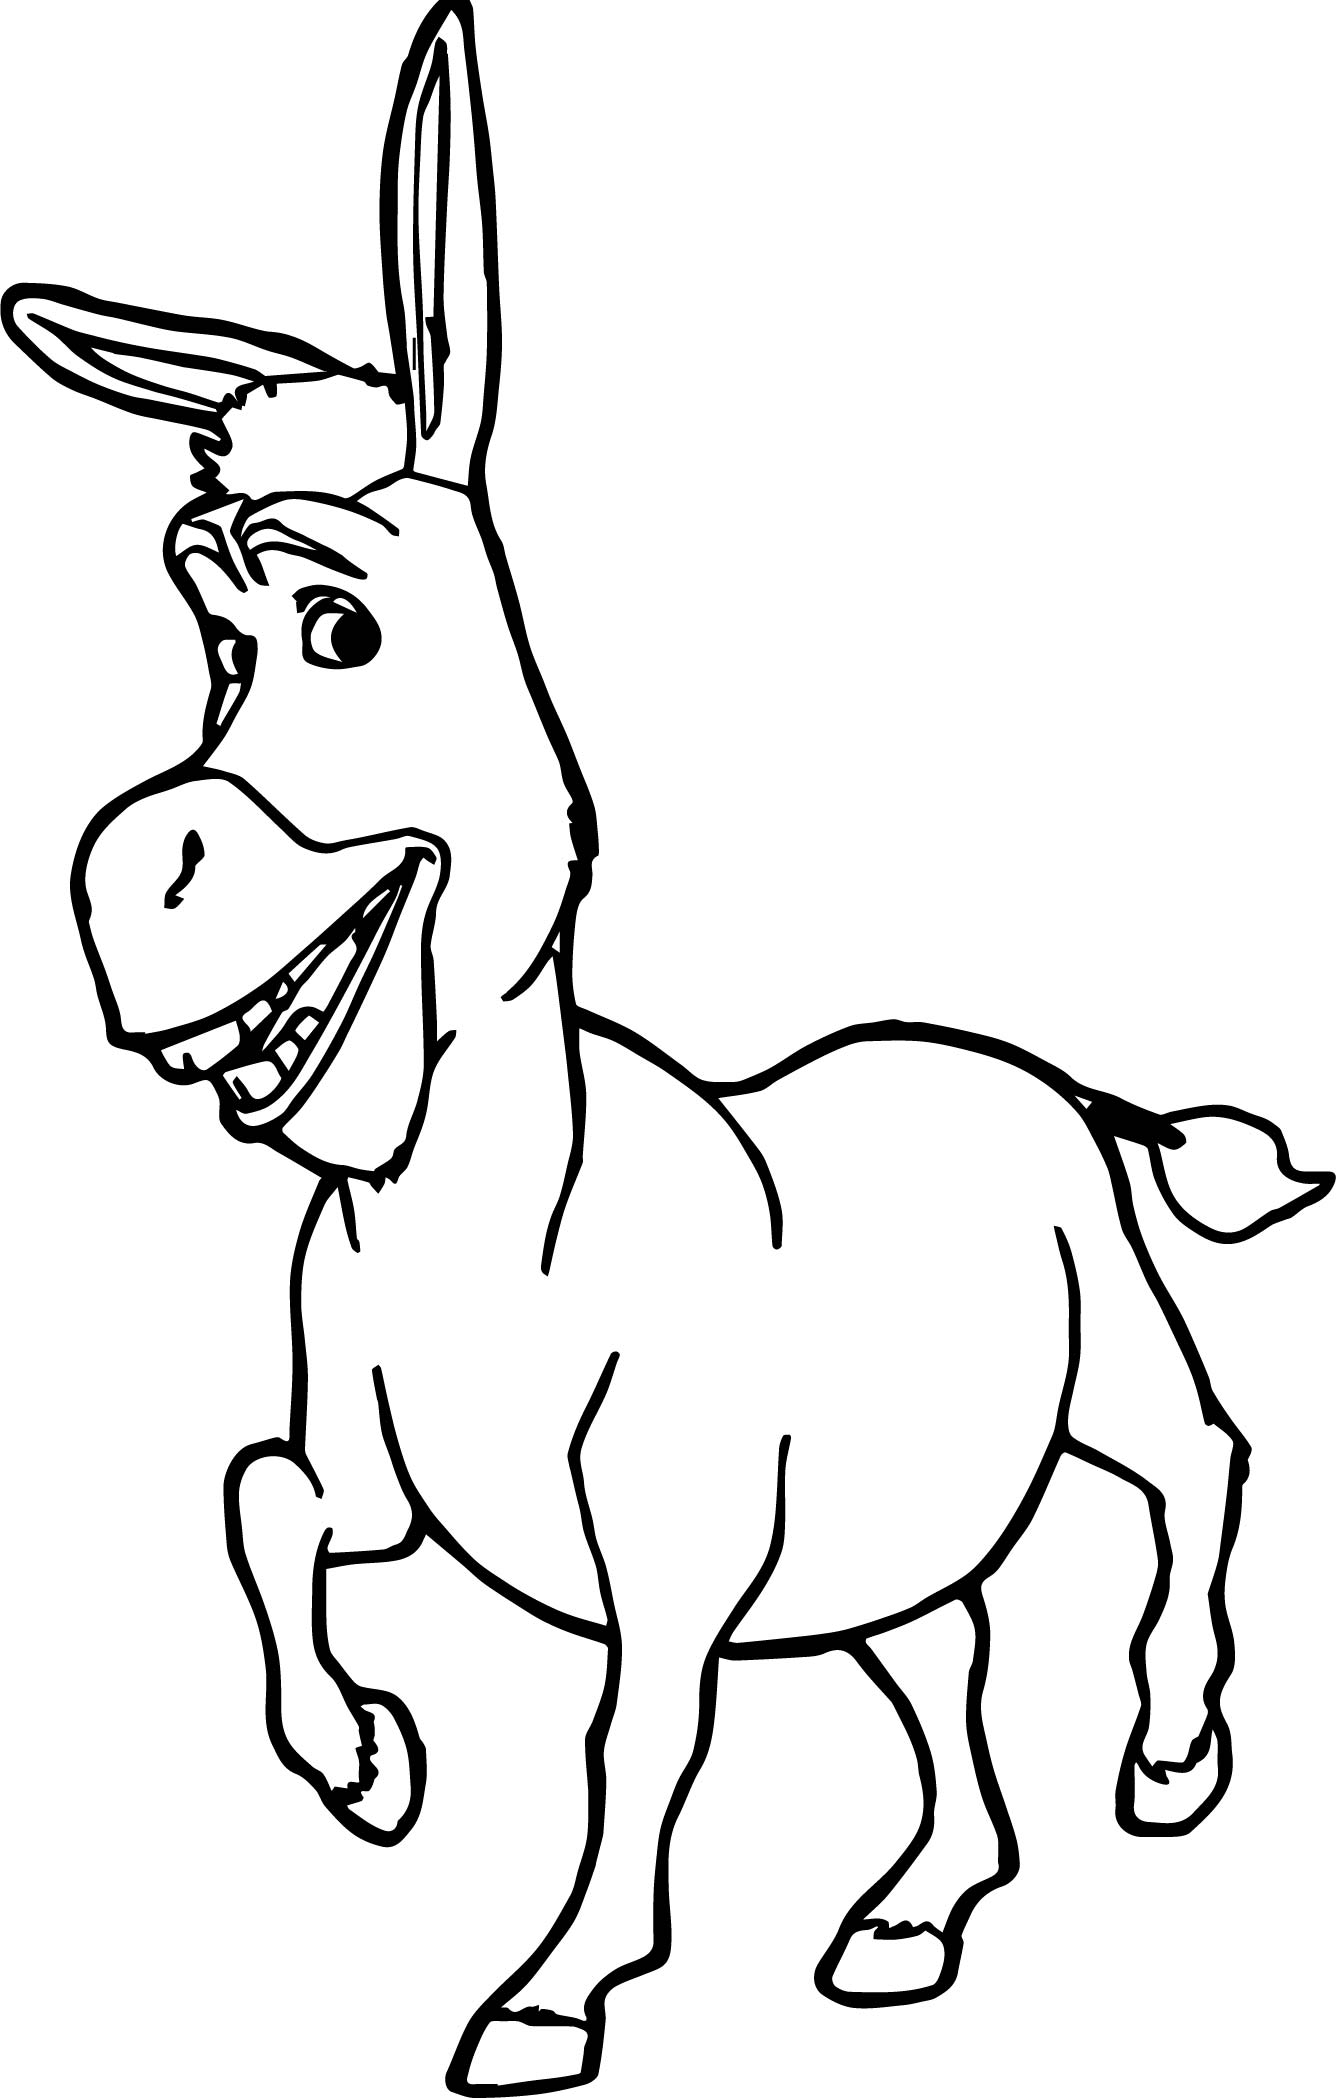 Donkey shrek coloring page for Donkey coloring pages free